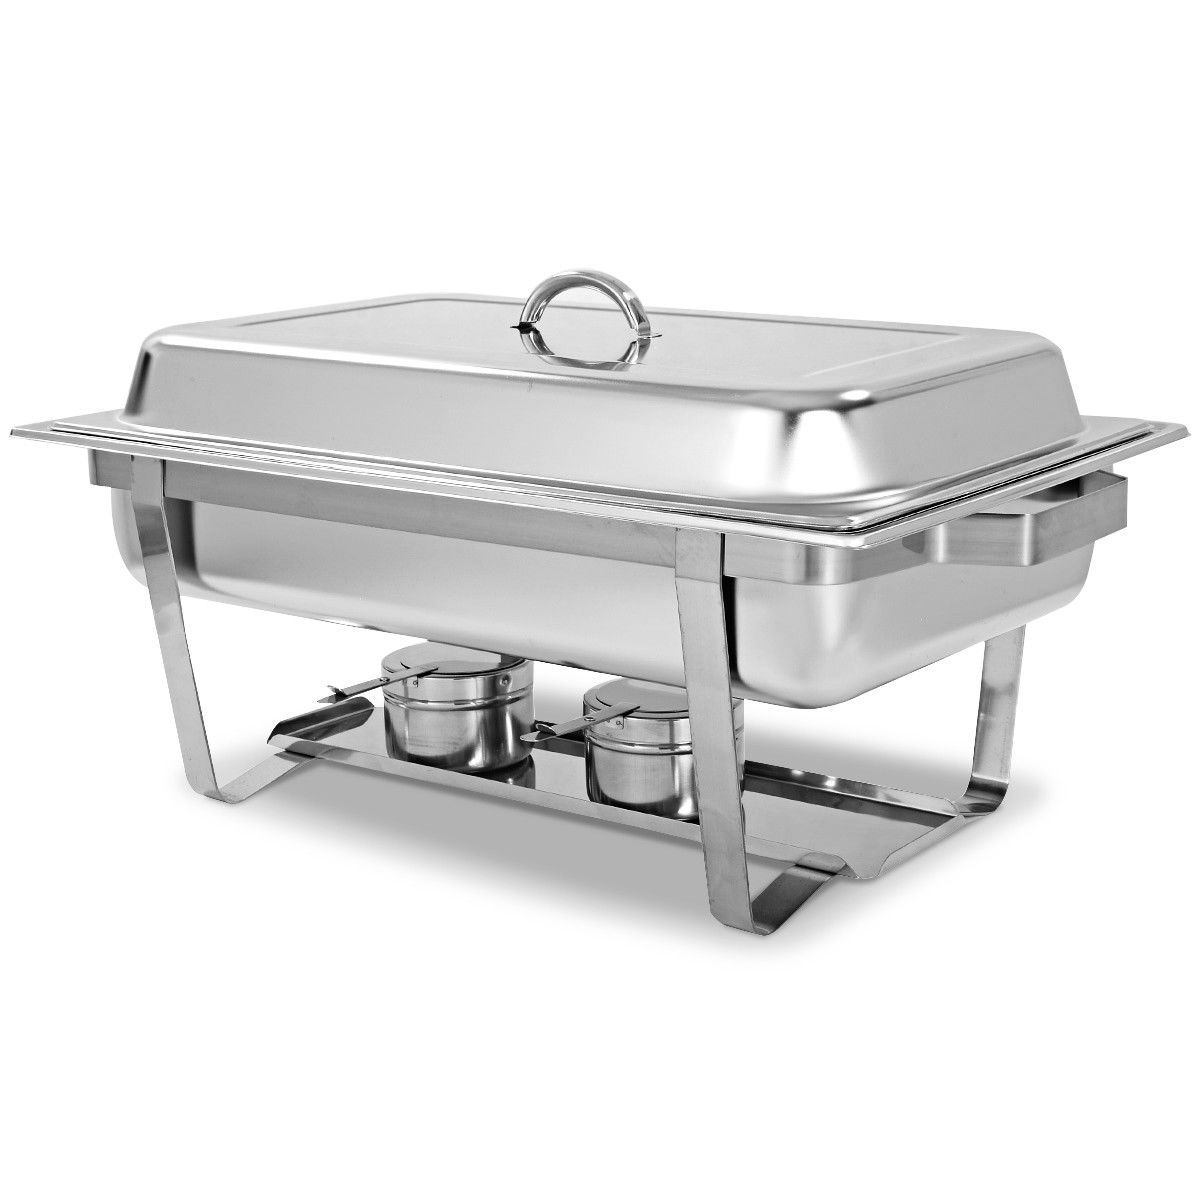 2 Packs Chafing Dish 9 Quart Stainless Steel Rectangular Chafer Full Size Buffet - image 8 of 10